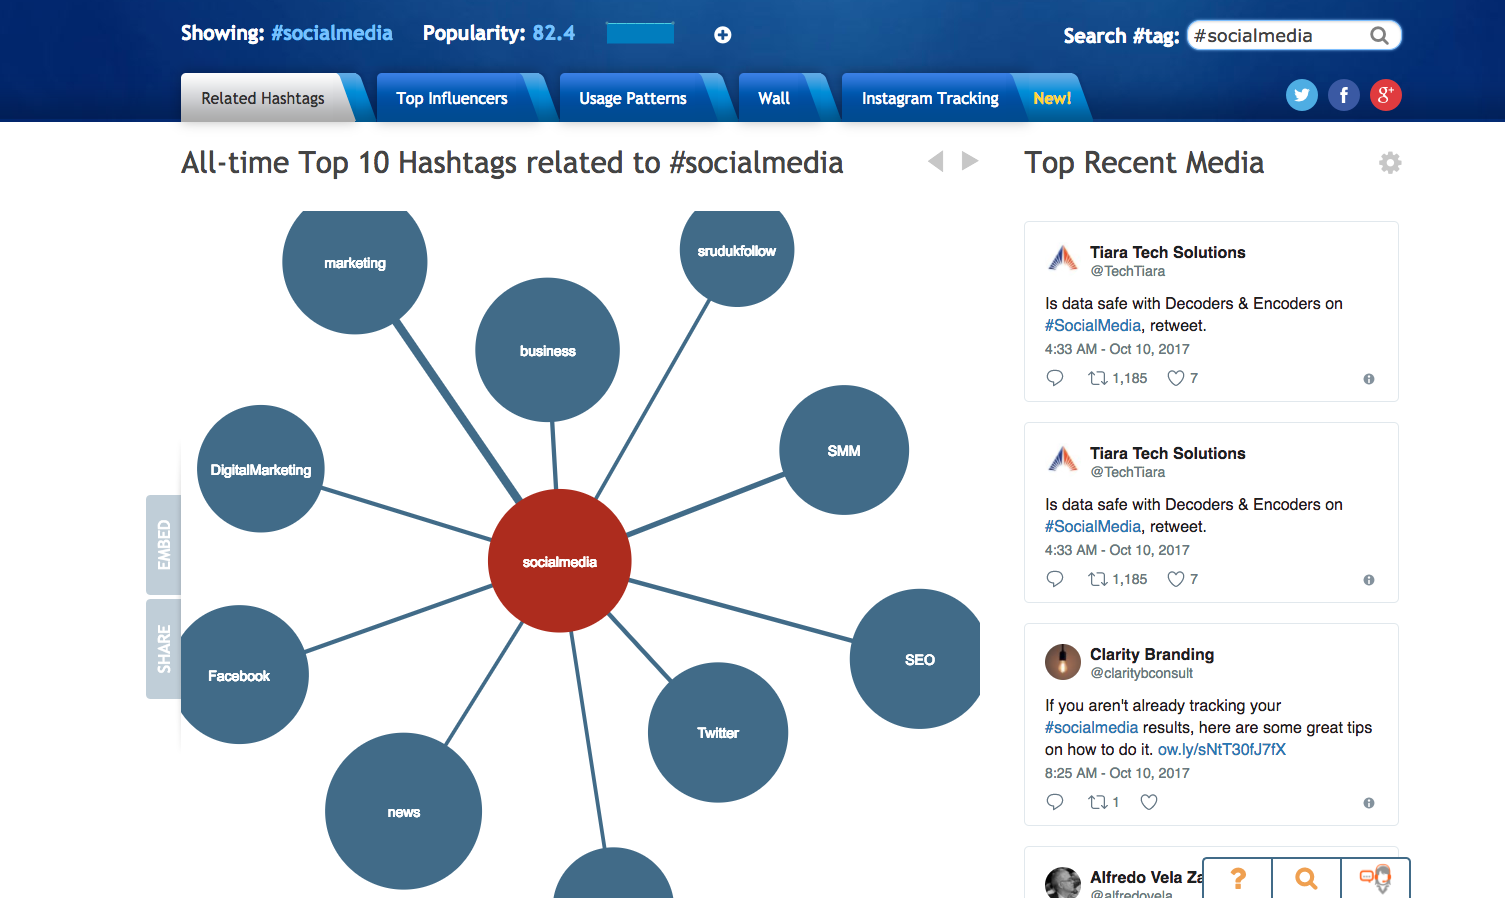 10 hashtags related to #socialmedia